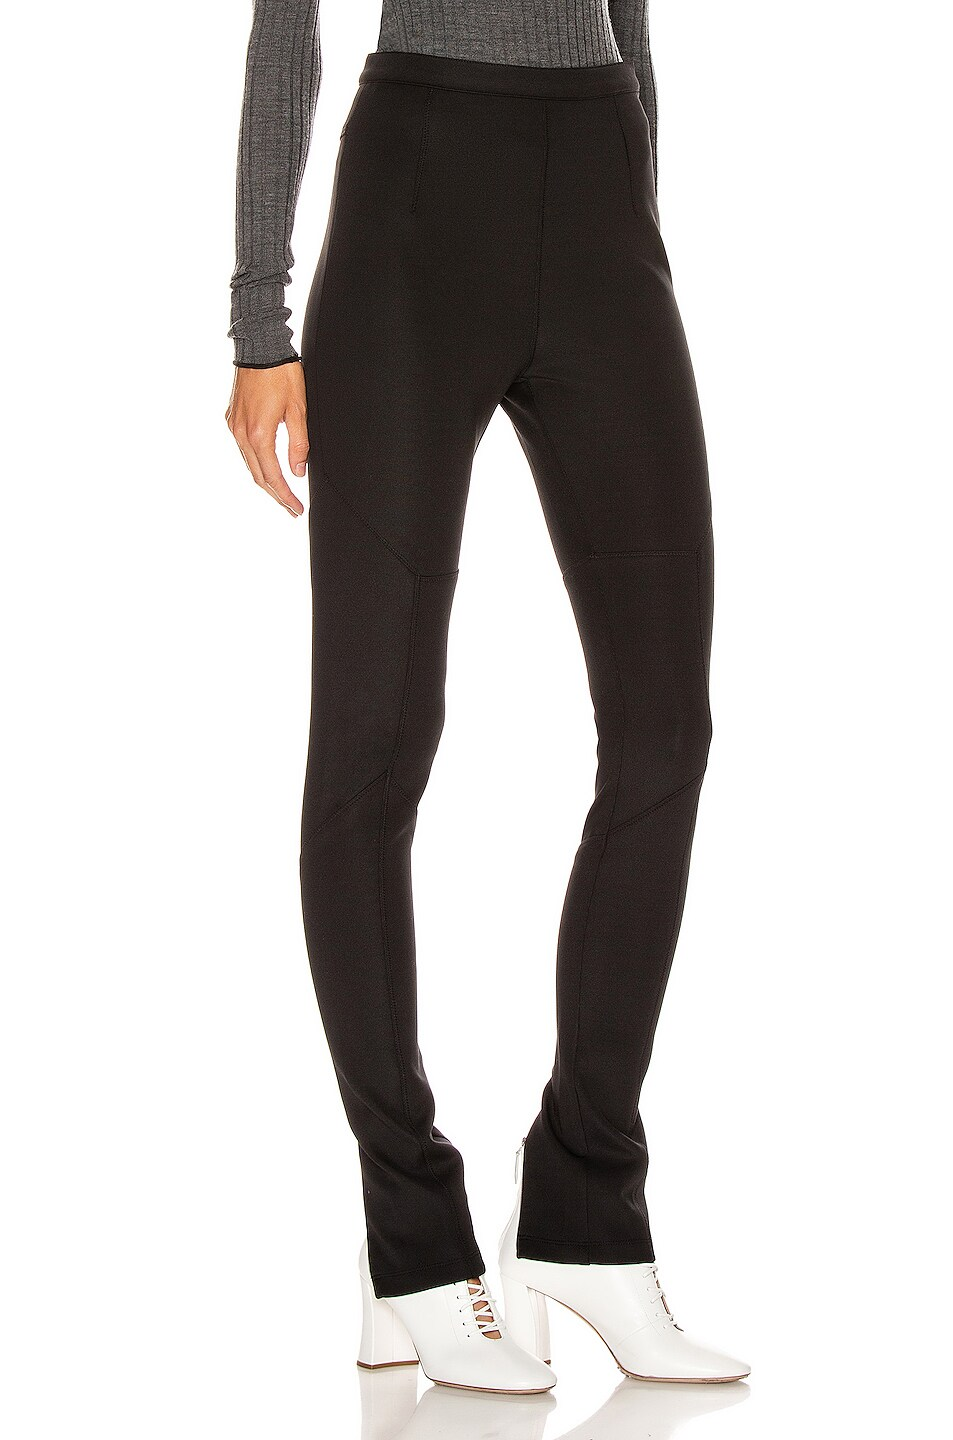 Image 2 of Proenza Schouler PSWL Straight Leg Pant in Black